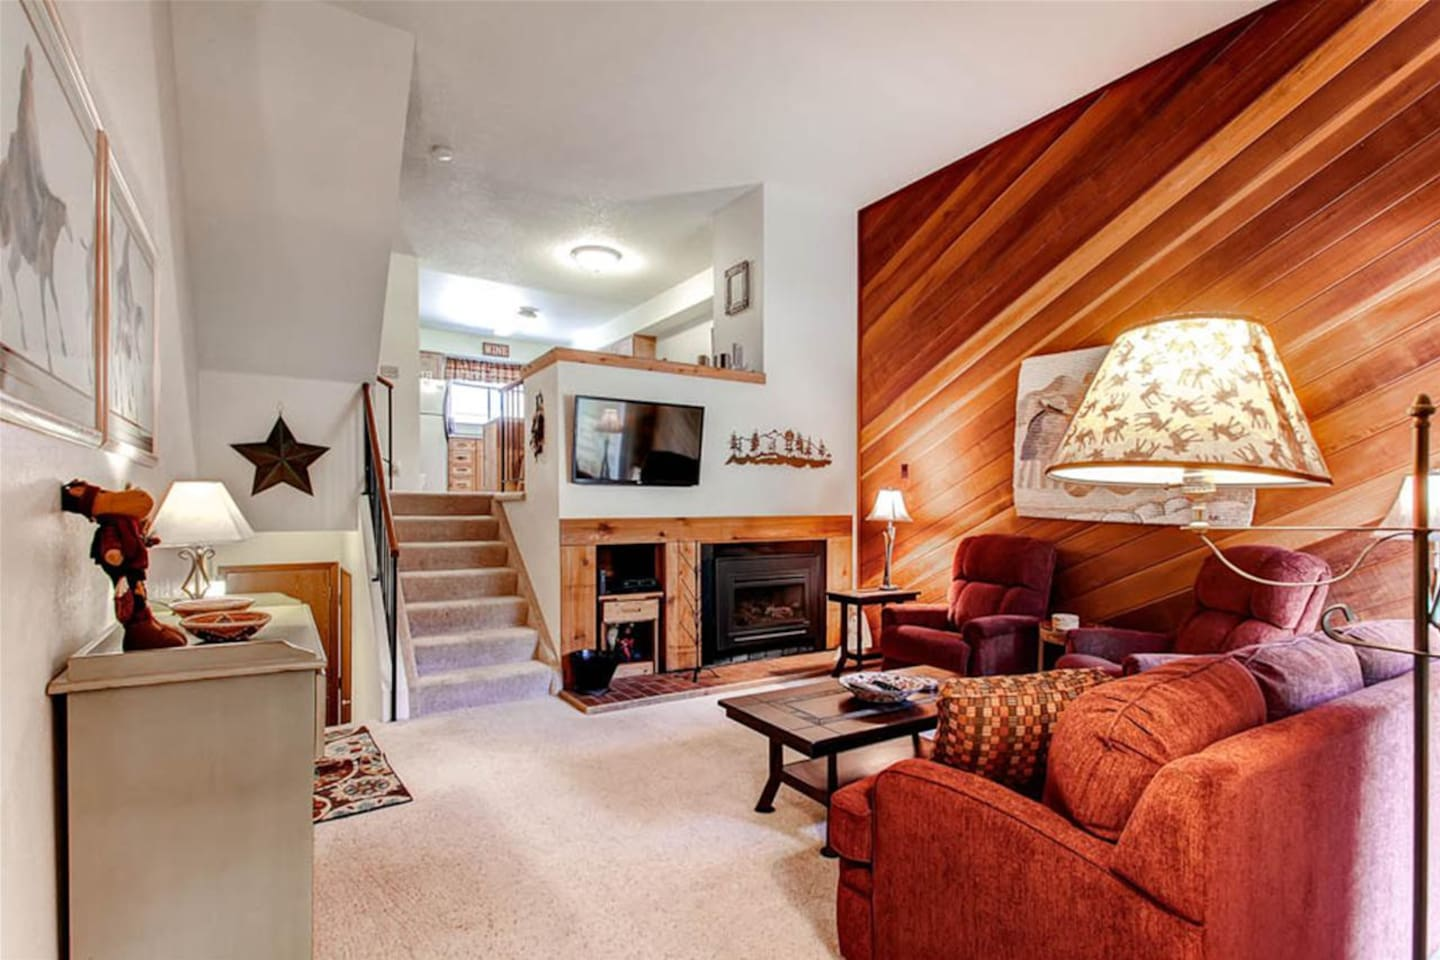 Winterpoint is one of our most popular condos in the Four O'Clock area in Breckenridge close to both Peak 8 and 9